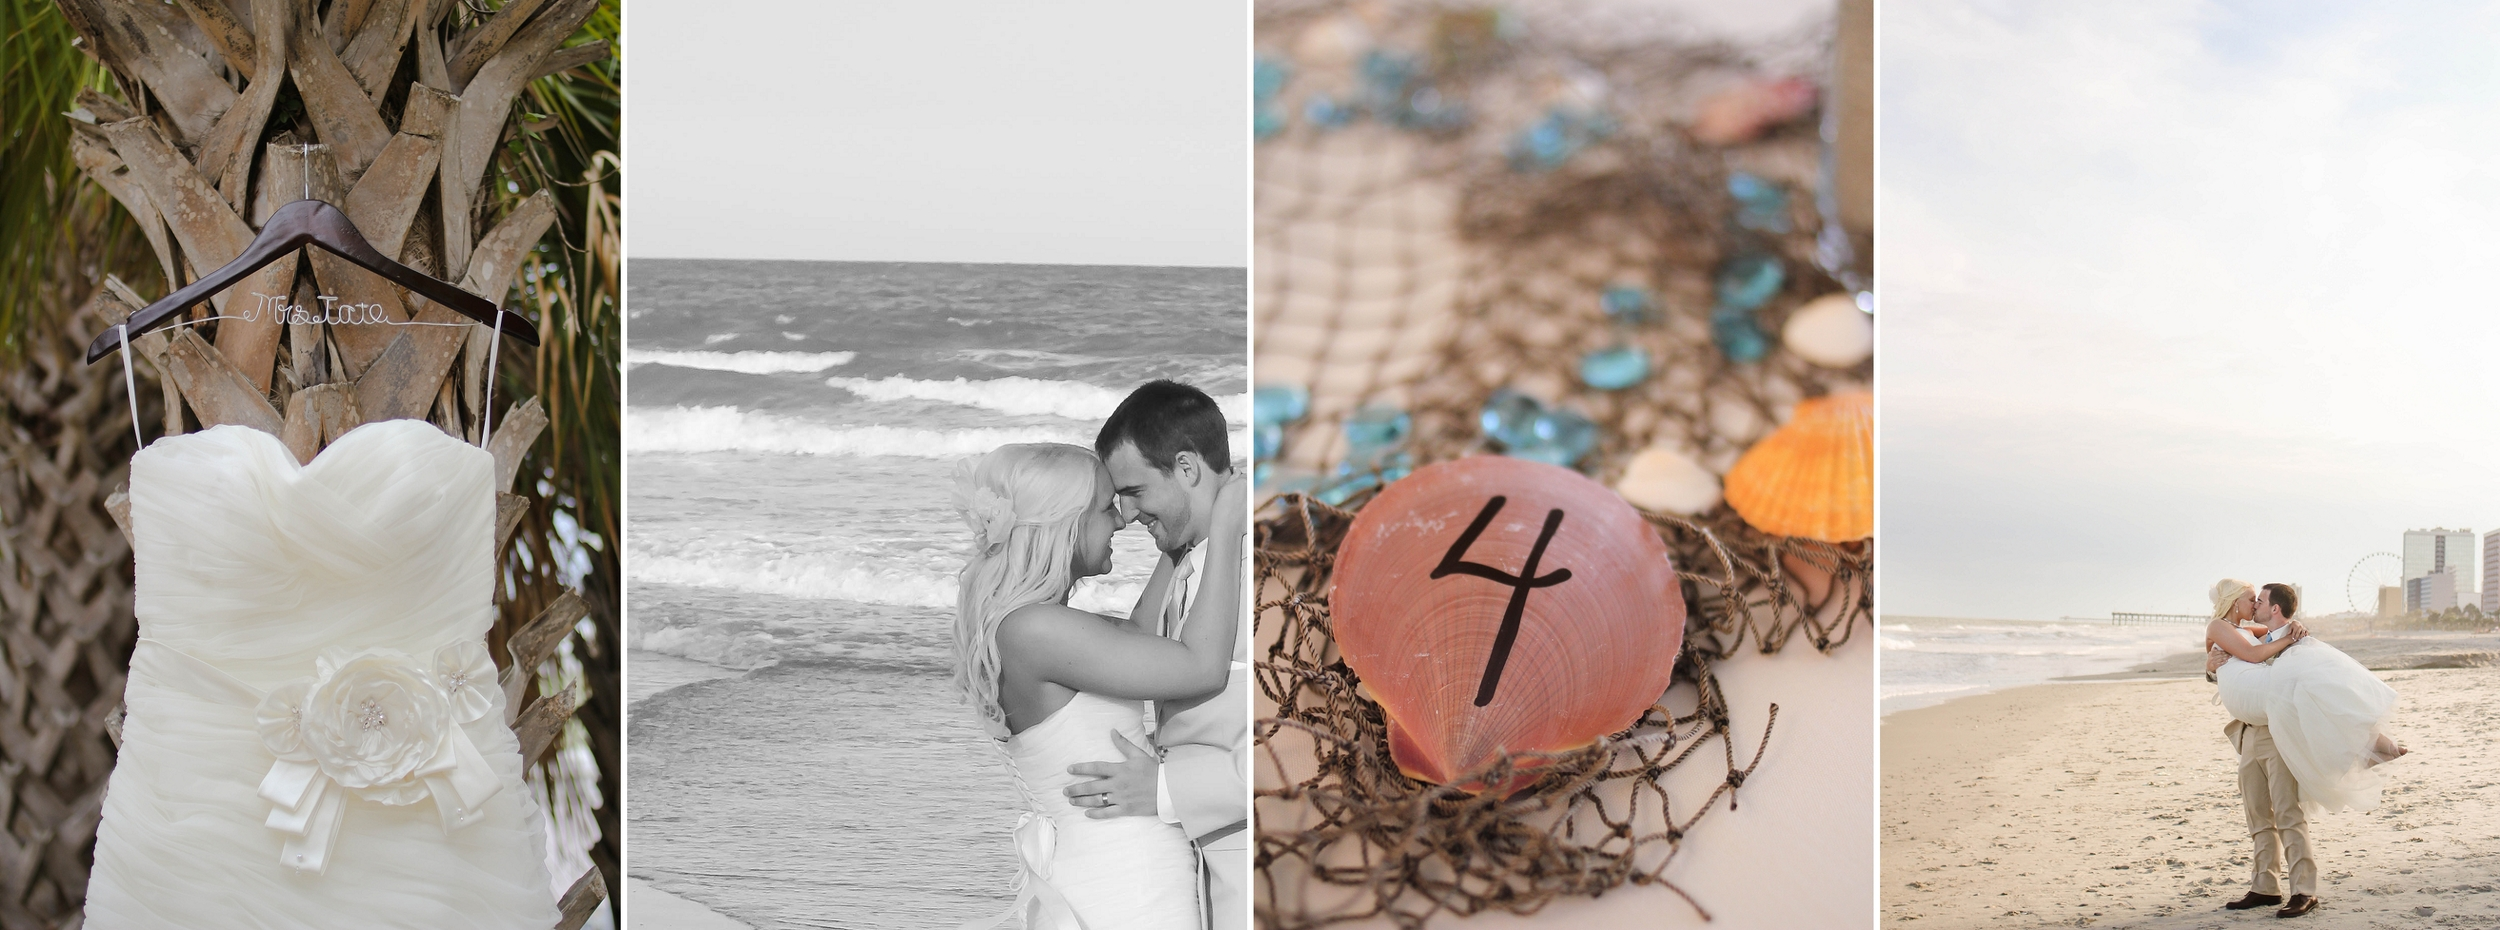 Daniel and Taylor Tate's summer wedding in Myrtle Beach, South Carolina!